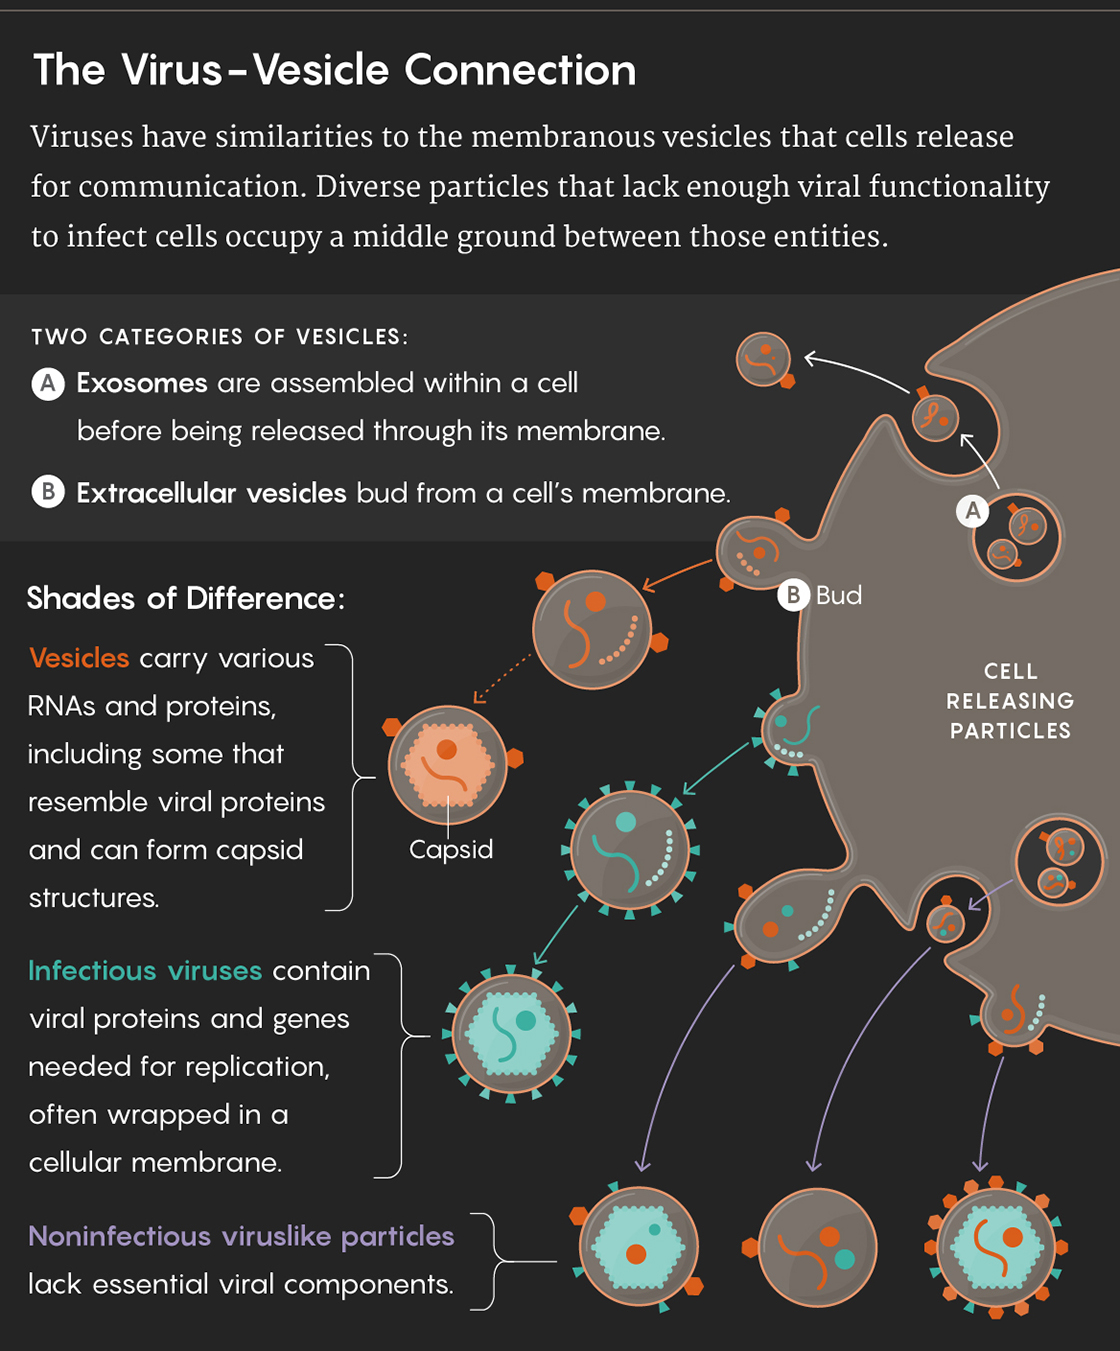 Graphic illustrating the virus-vesicle connection: Viruses have similarities to the membranous vesicles that cells release for communication. Diverse particles that lack enough viral functionality to infect cells occupy a middle ground between those entities. TWO CATEGORIES OF VESICLES: Exosomes are assembled within a cell before being released through its membrane. Extracellular vesicles bud from a cell's membrane. Shades of Difference: Vesicles carry various RNAs and proteins, including some that resemble viral proteins and can form capsid structures. Infectious viruses contain viral proteins and genes needed for replication, often wrapped in a cellular membrane. Noninfectious viruslike particles lack essential viral components.